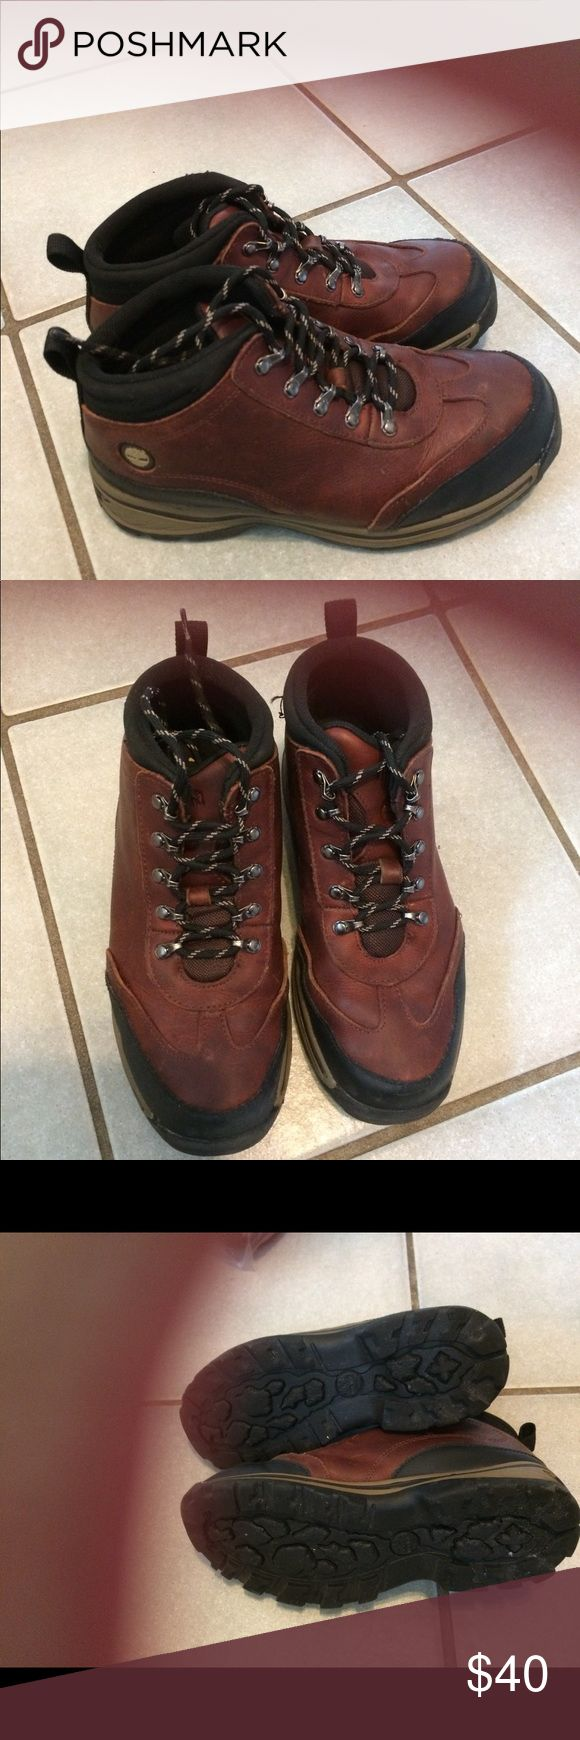 Boys Timberland Boots  size 4.5 Boys Timberland boots size 4 1/2 in excellent pre owned  condition. Timberland Shoes Boots